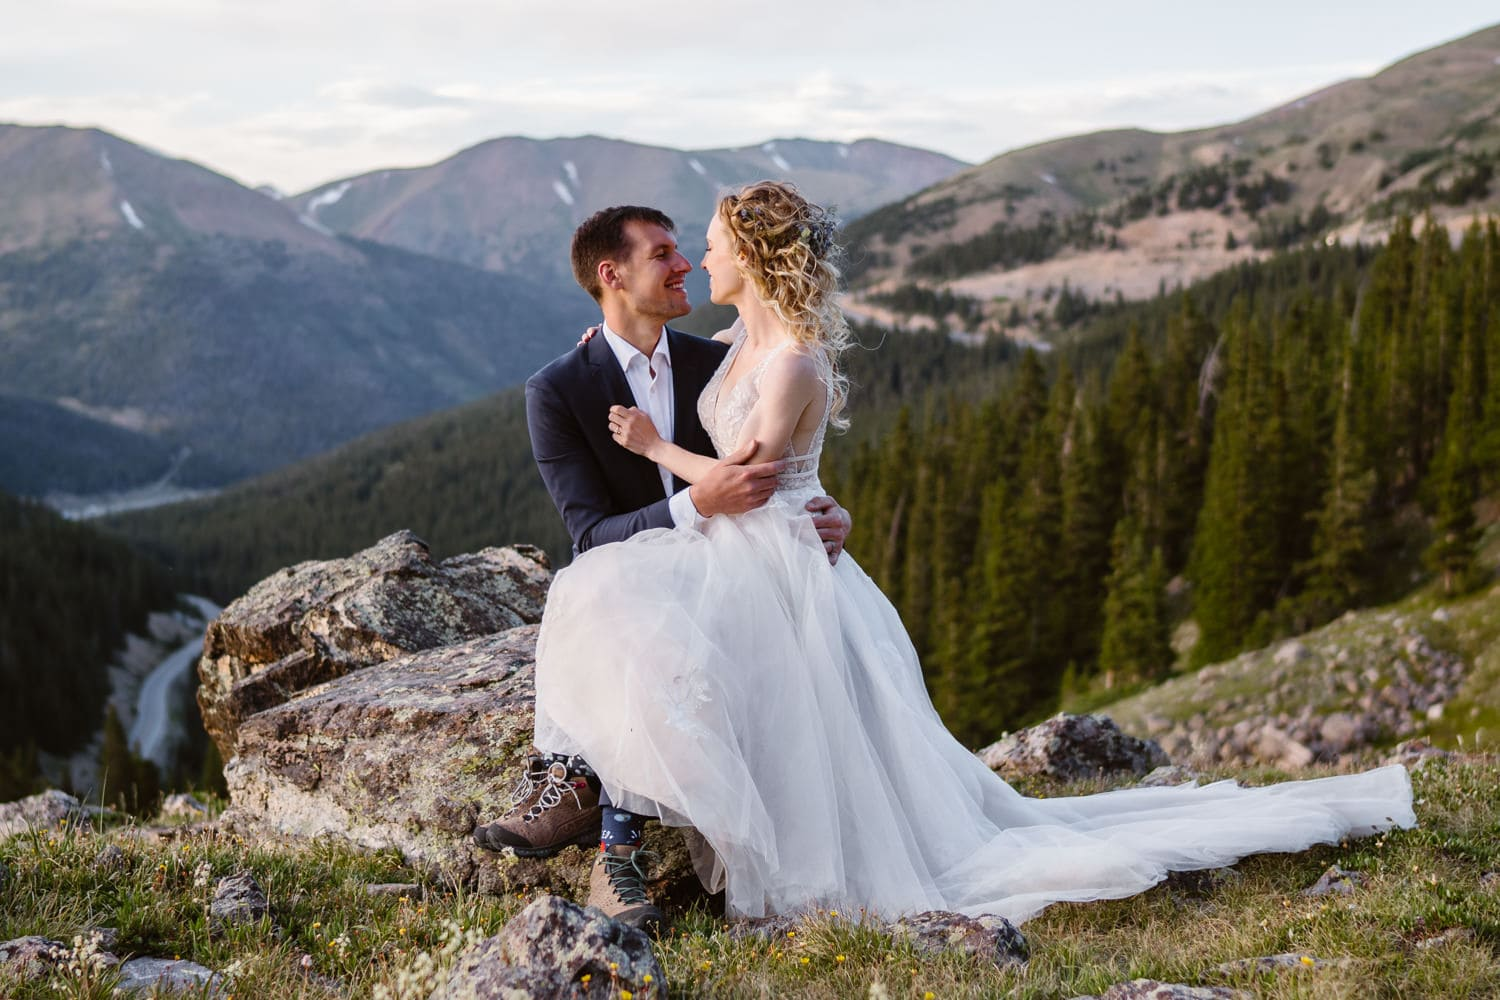 Colorado Elopement Packages